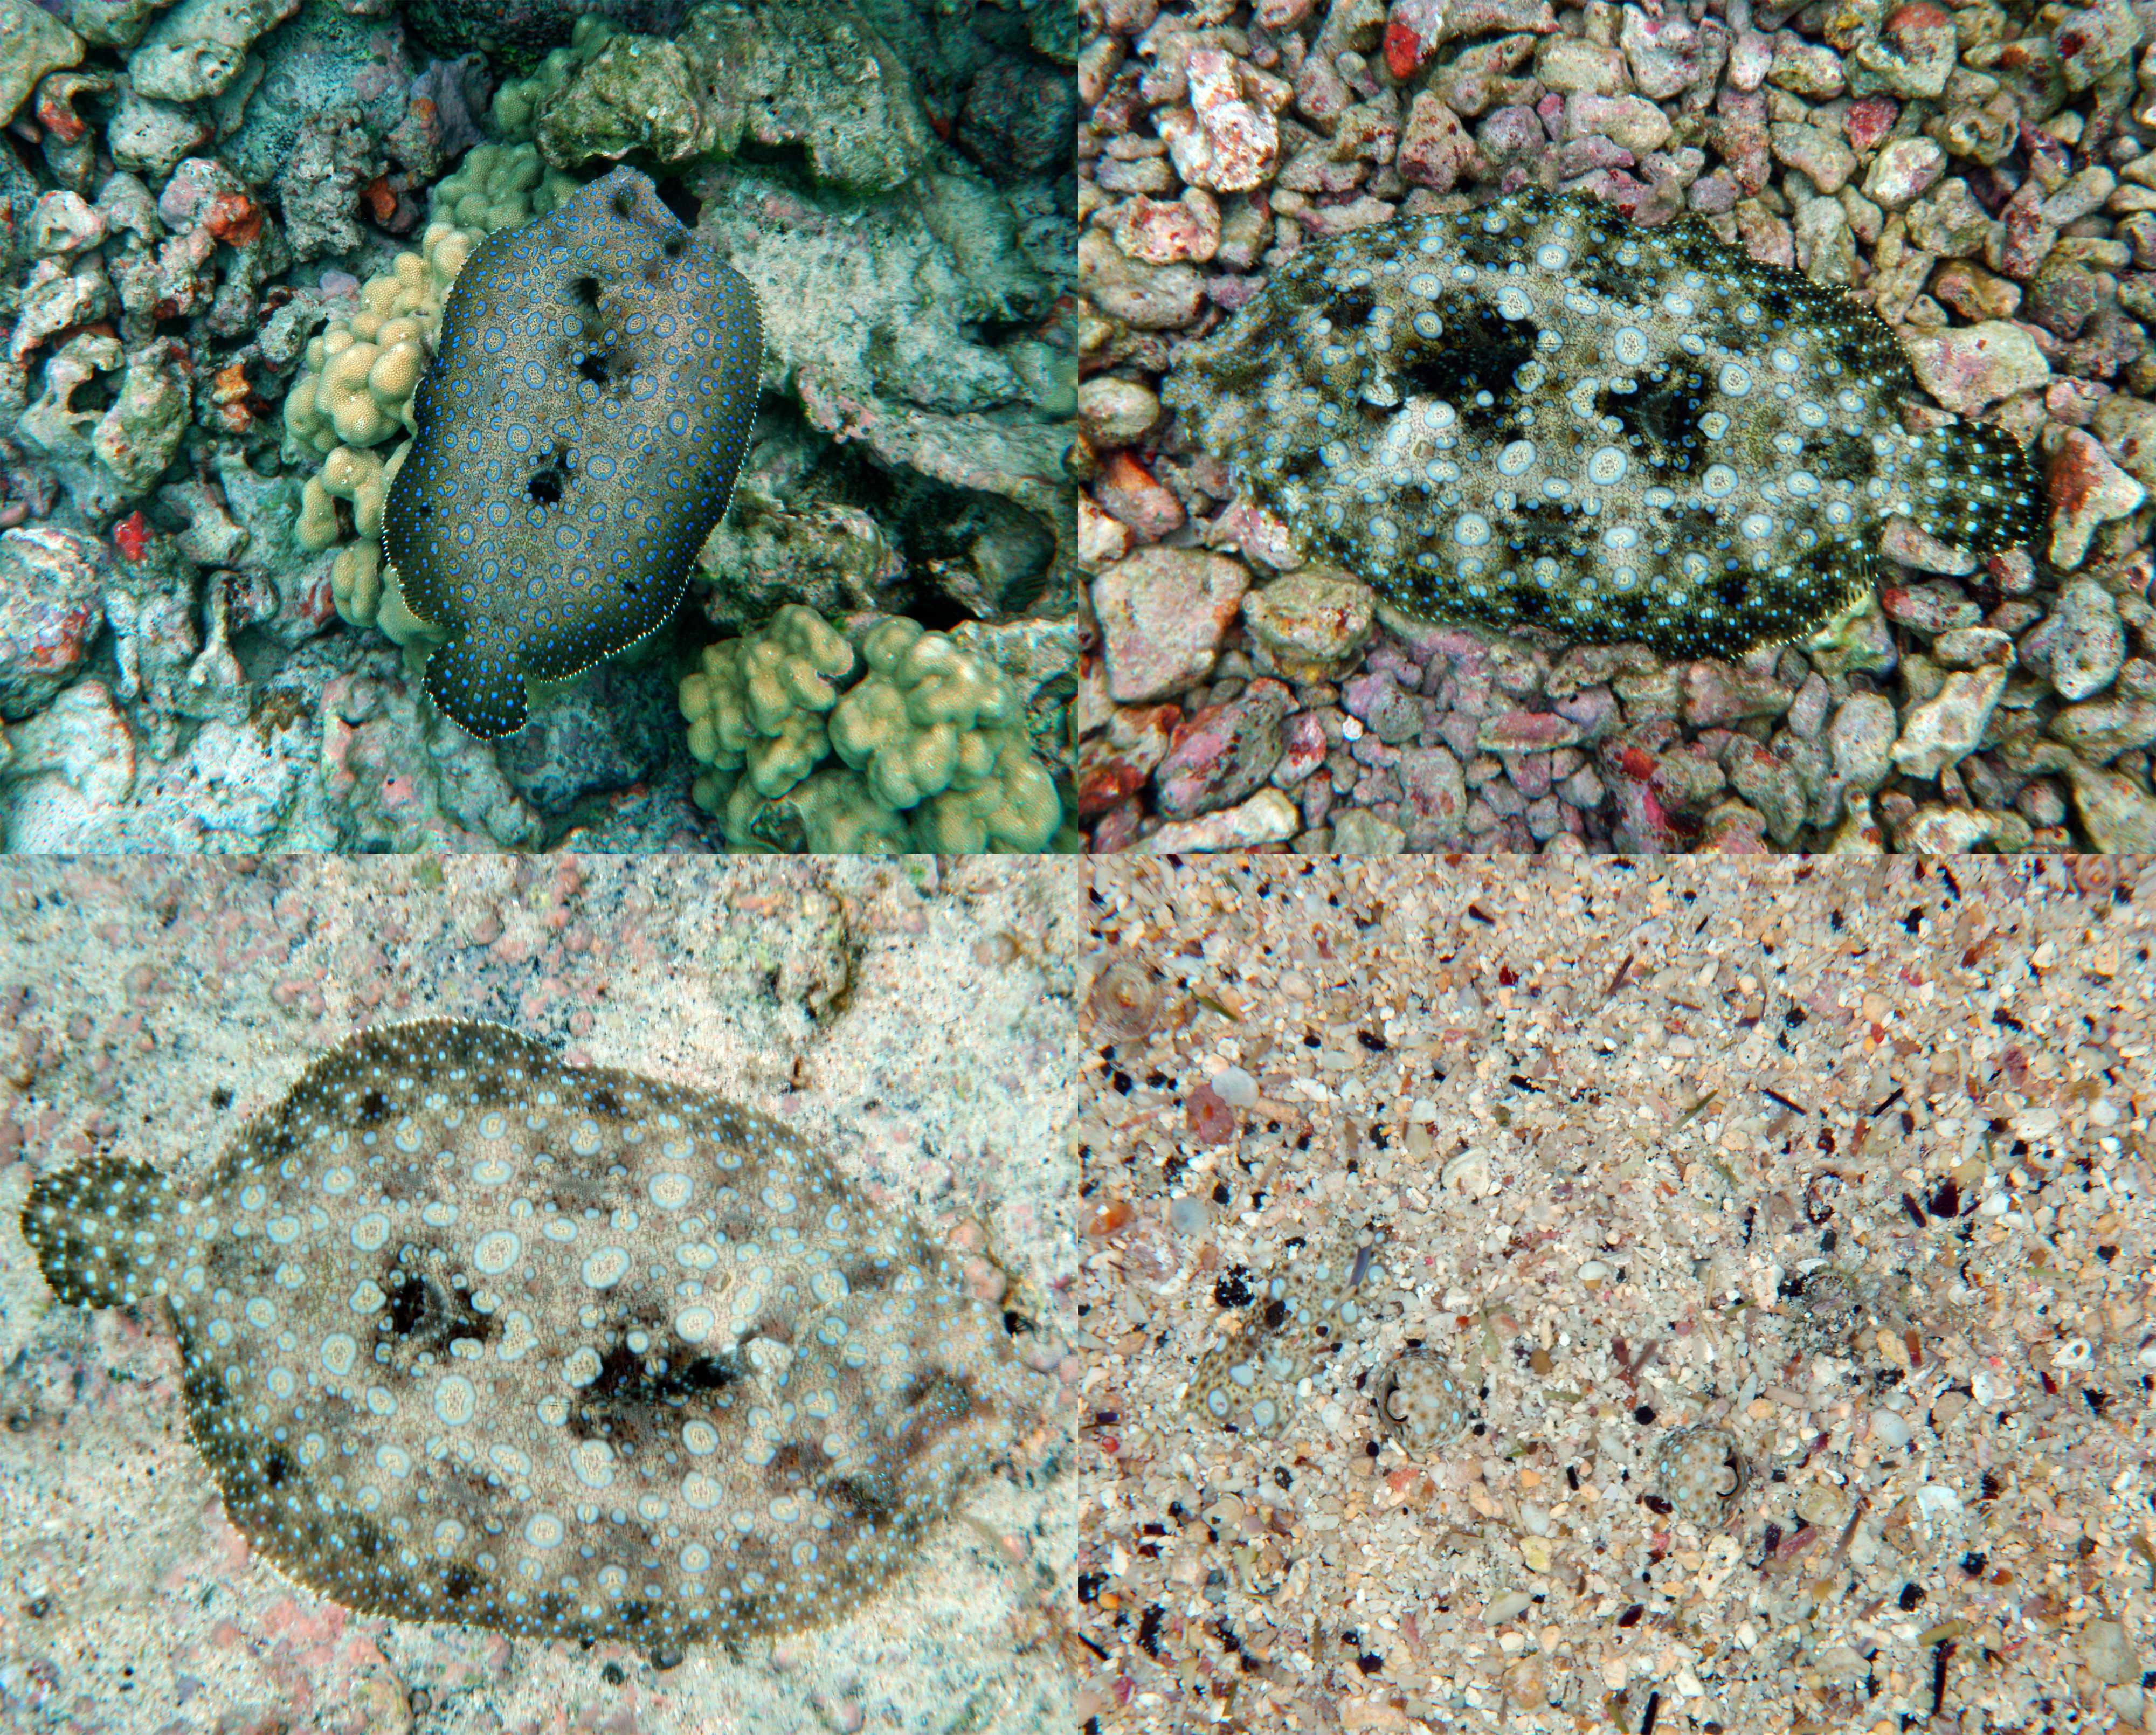 Peacock Flounder. Source: Brocken Inaglory, WIkimedia Commons. Note: All photos of the same fish taken within minutes of eachother.